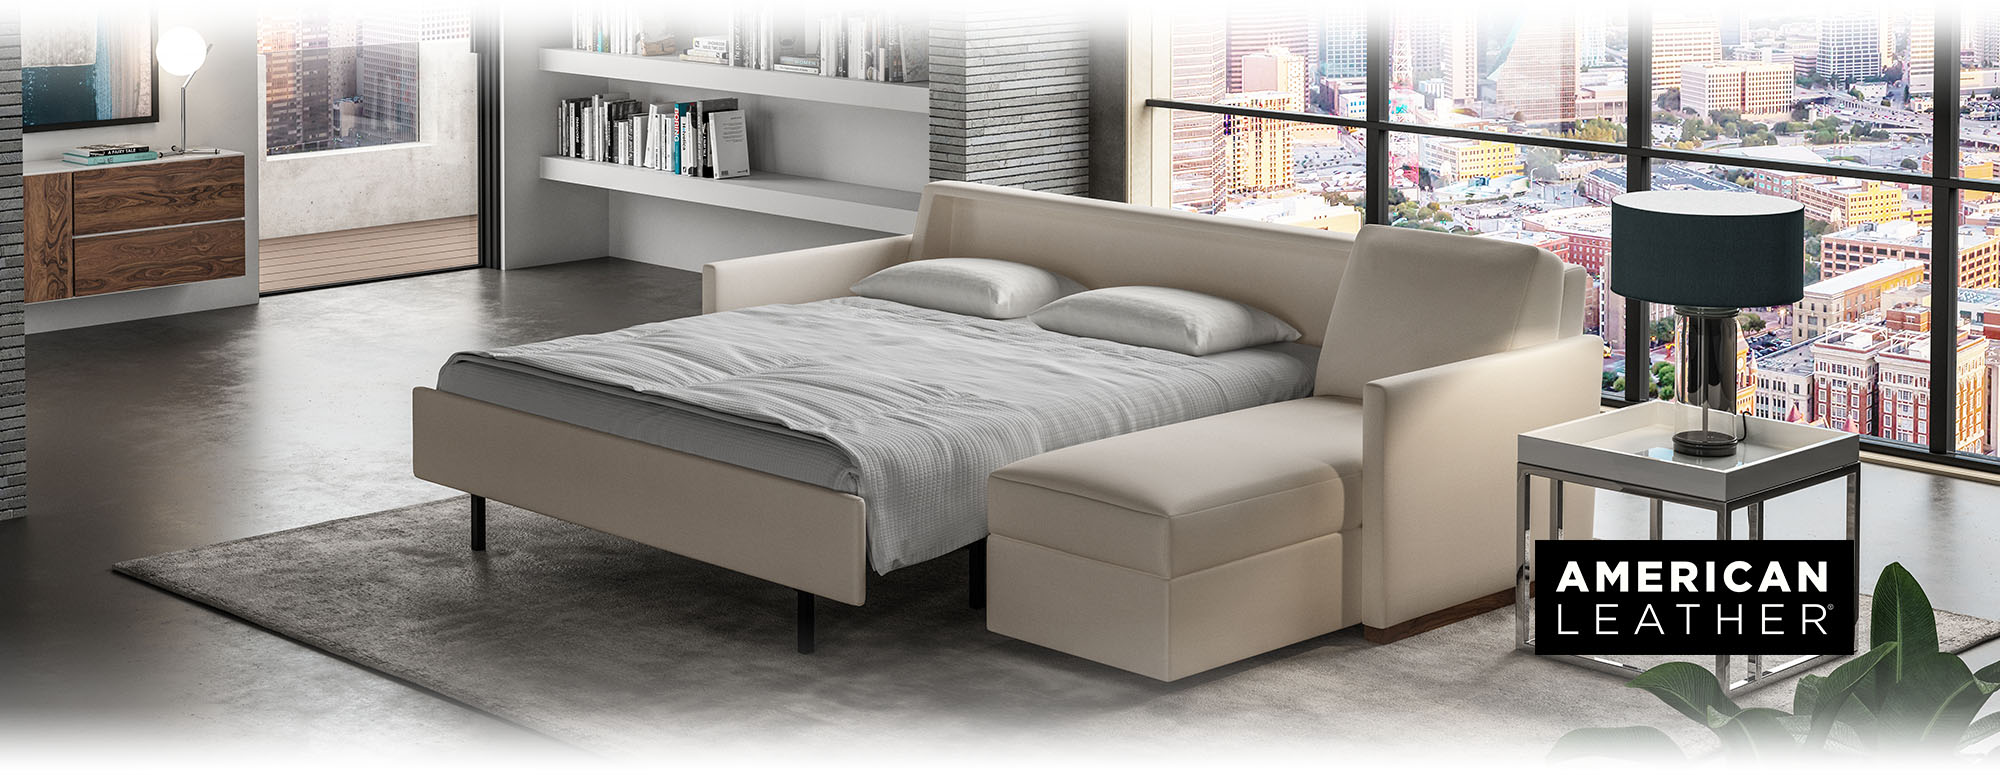 The American Leather Comfort Sleeper